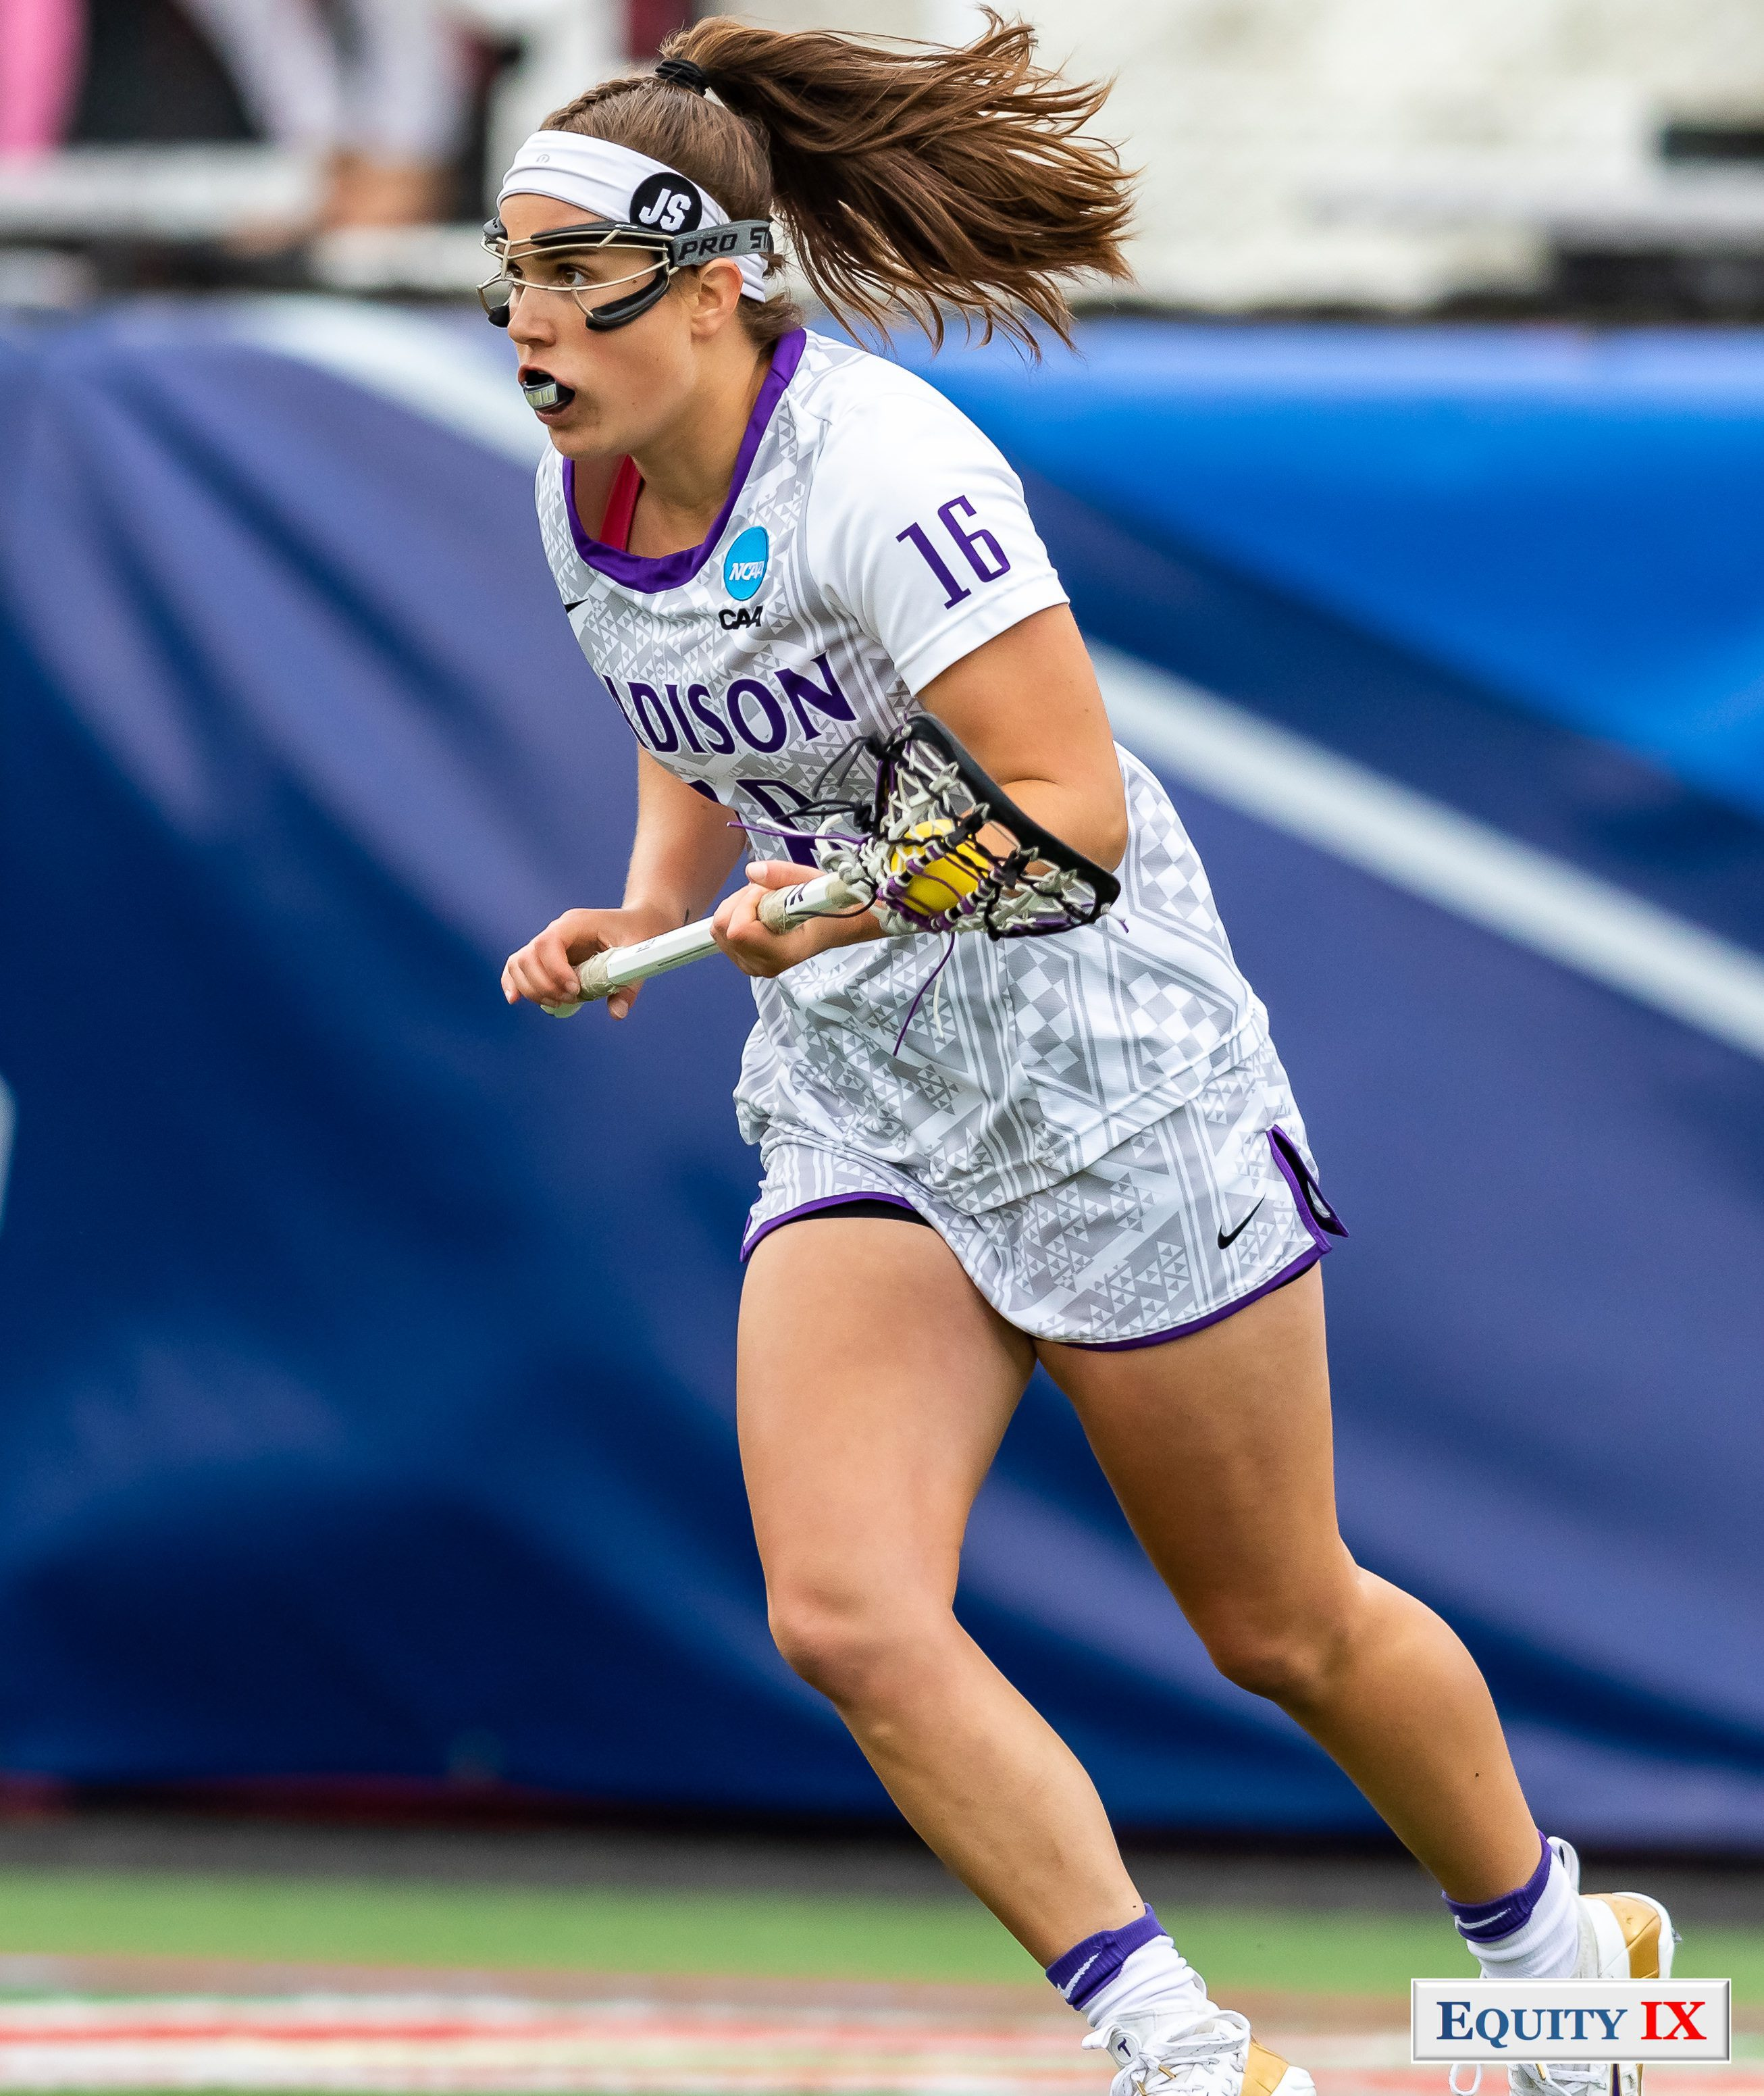 """#16 Corinne Schmidt (JMU) cradles yellow lacrosse ball in her stick left handed and runs down the field wearing a white headband with the initial """"JS"""" on the side, googles and mouthguard - 2018 NCAA Women's Lacrosse Champions © Equity IX - SportsOgram - Leigh Ernst Friestedt"""